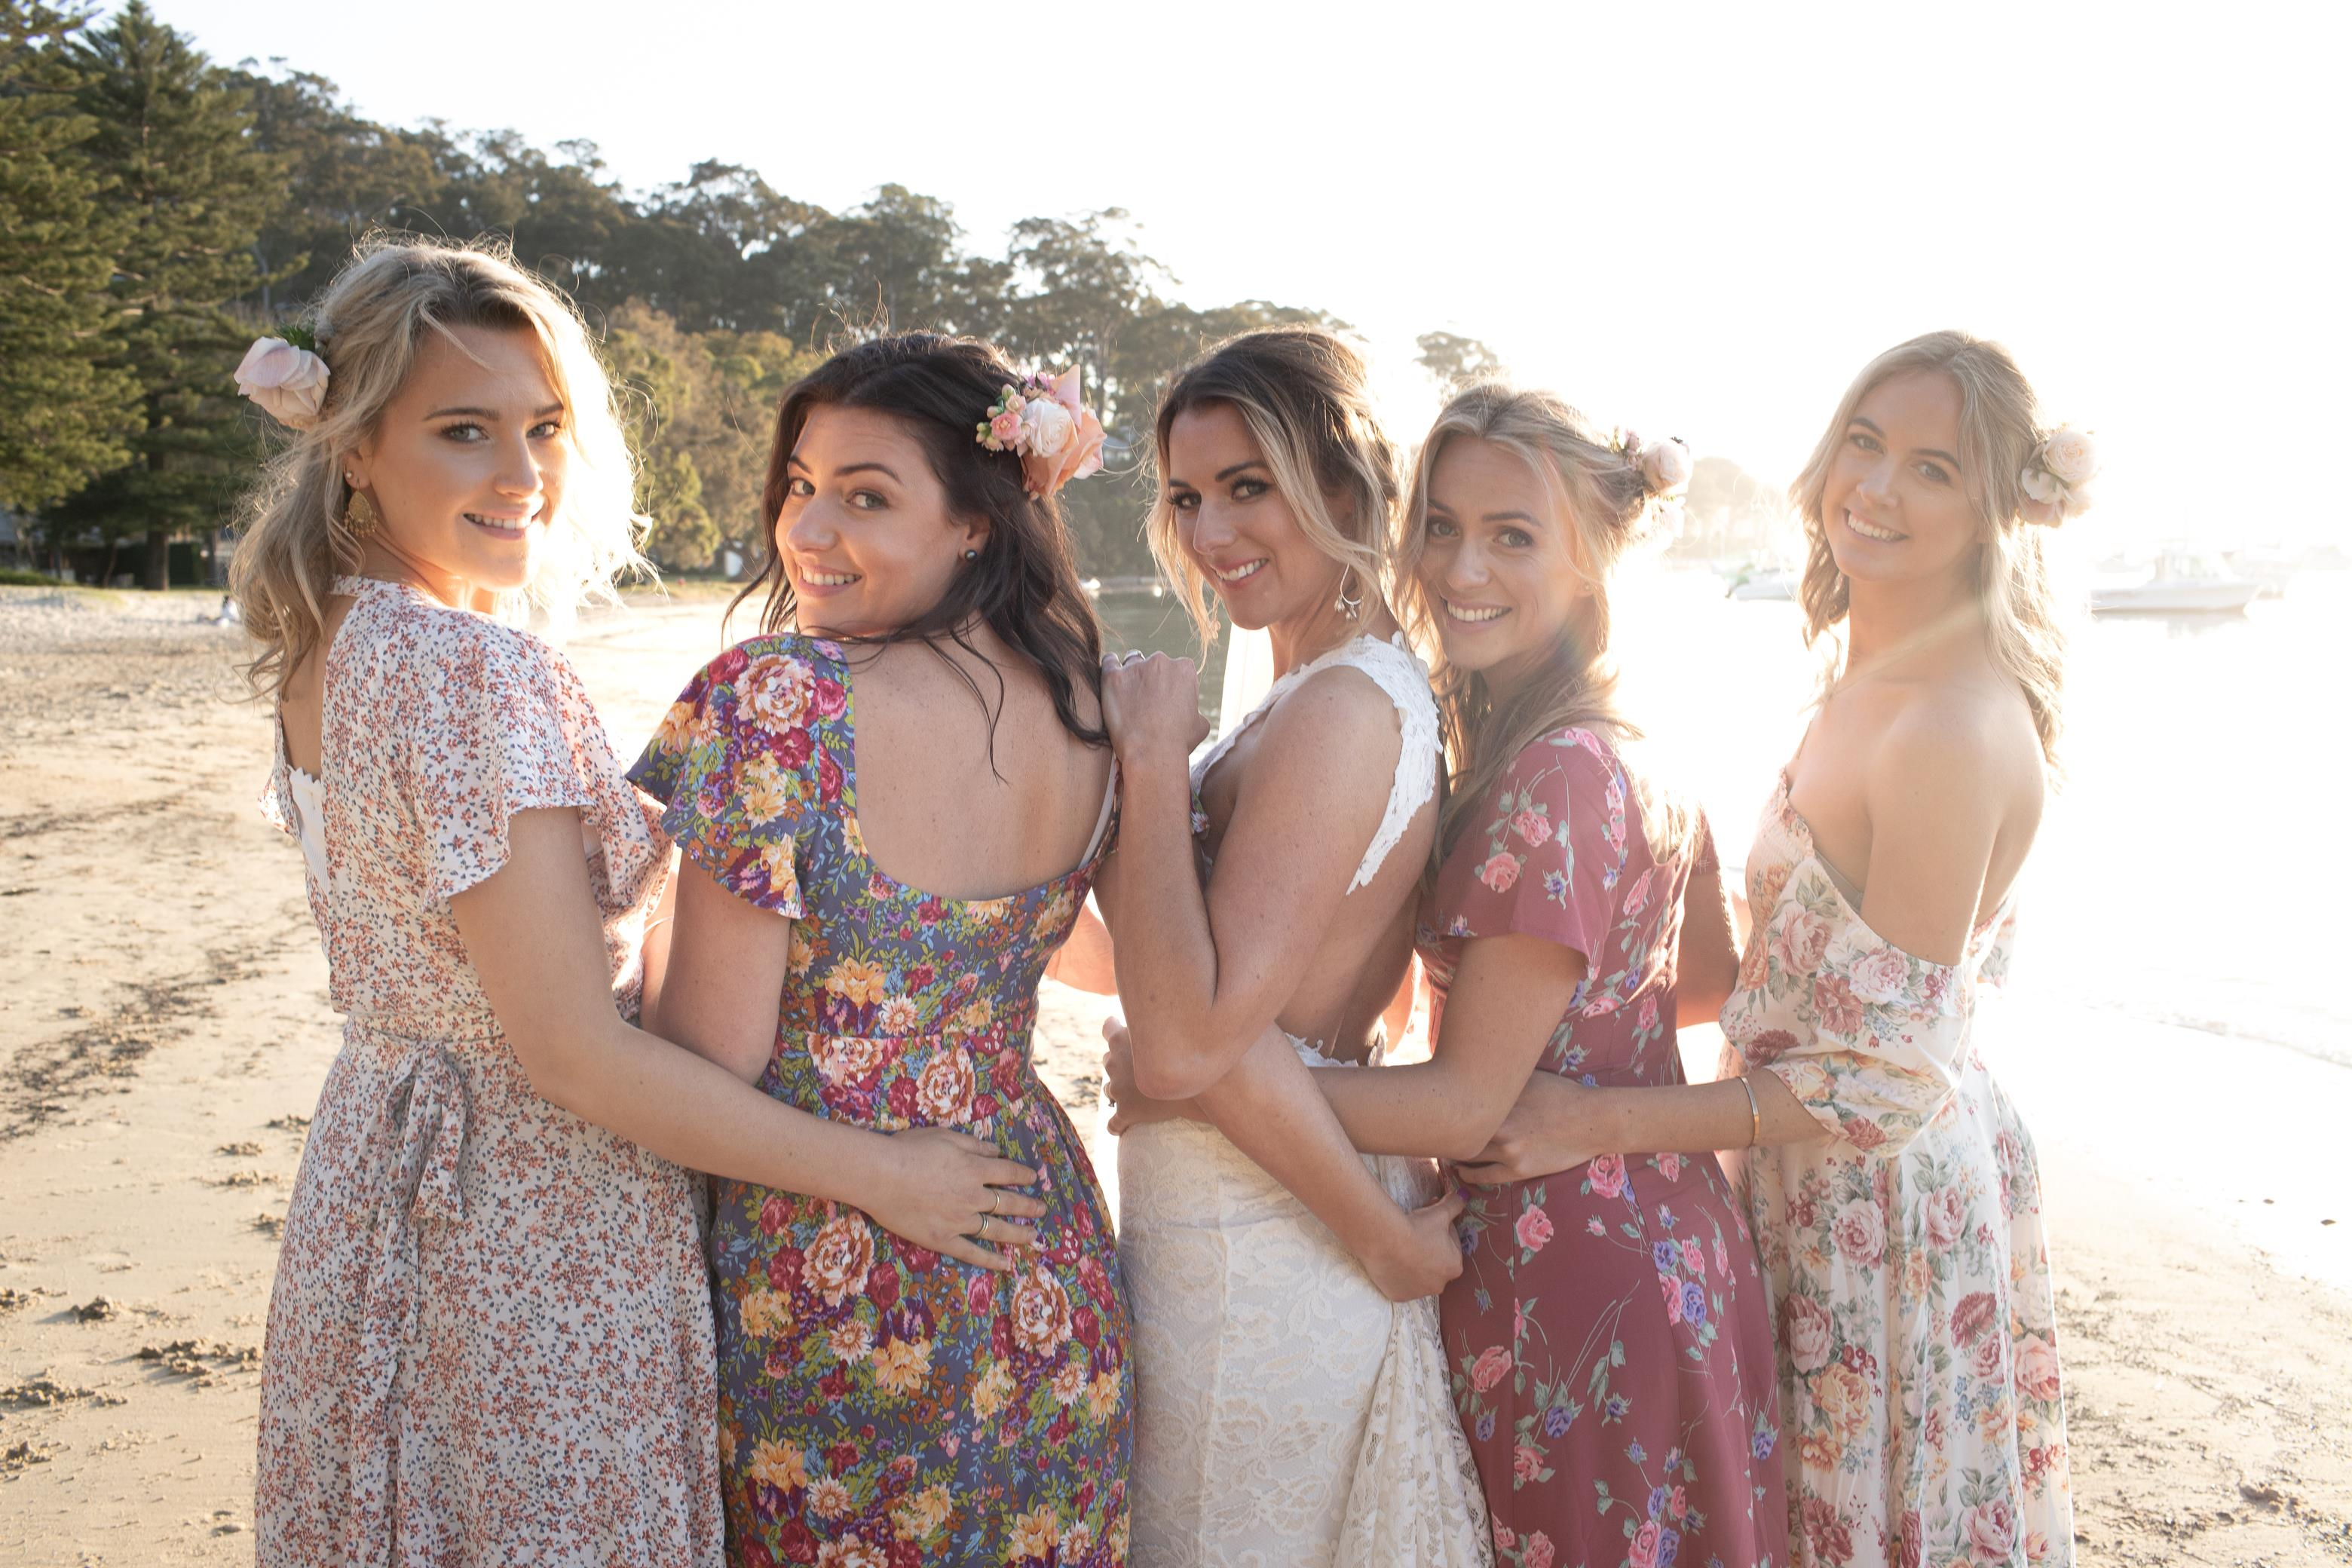 Photoshoot of bride and bridesmaids turning around in floral dresses